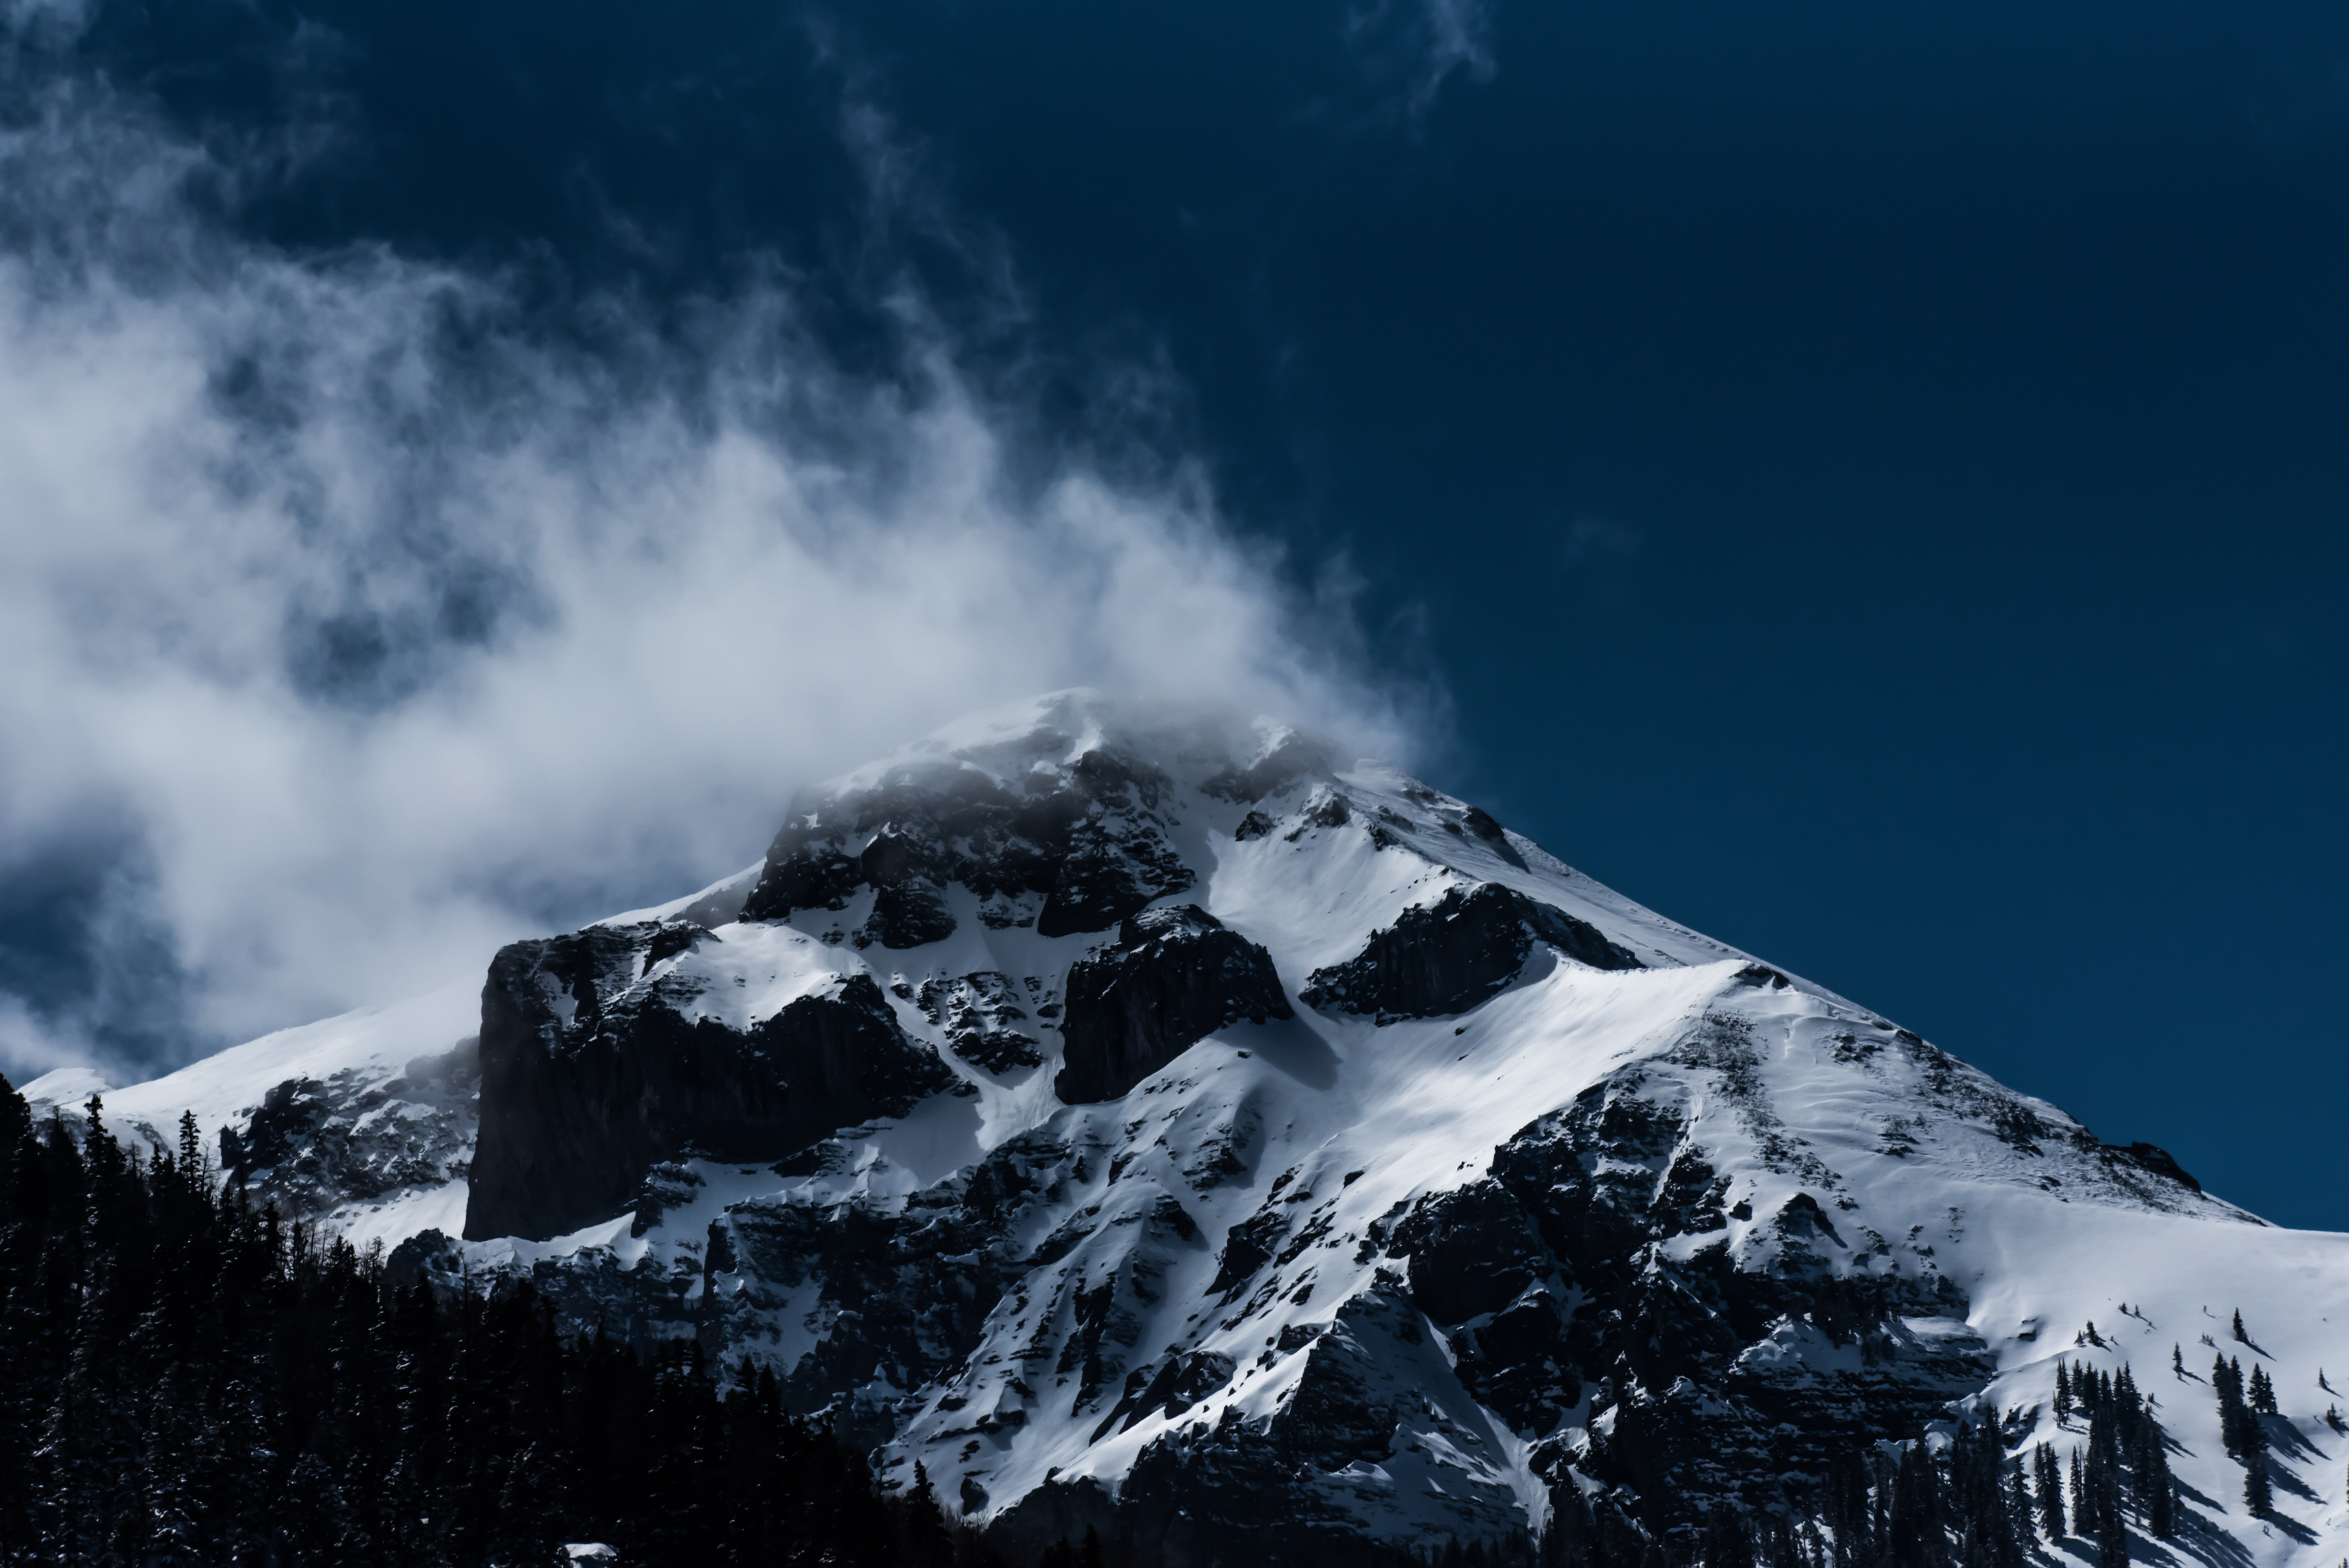 Wisps of smoke and clouds over a snowcapped mountain peak